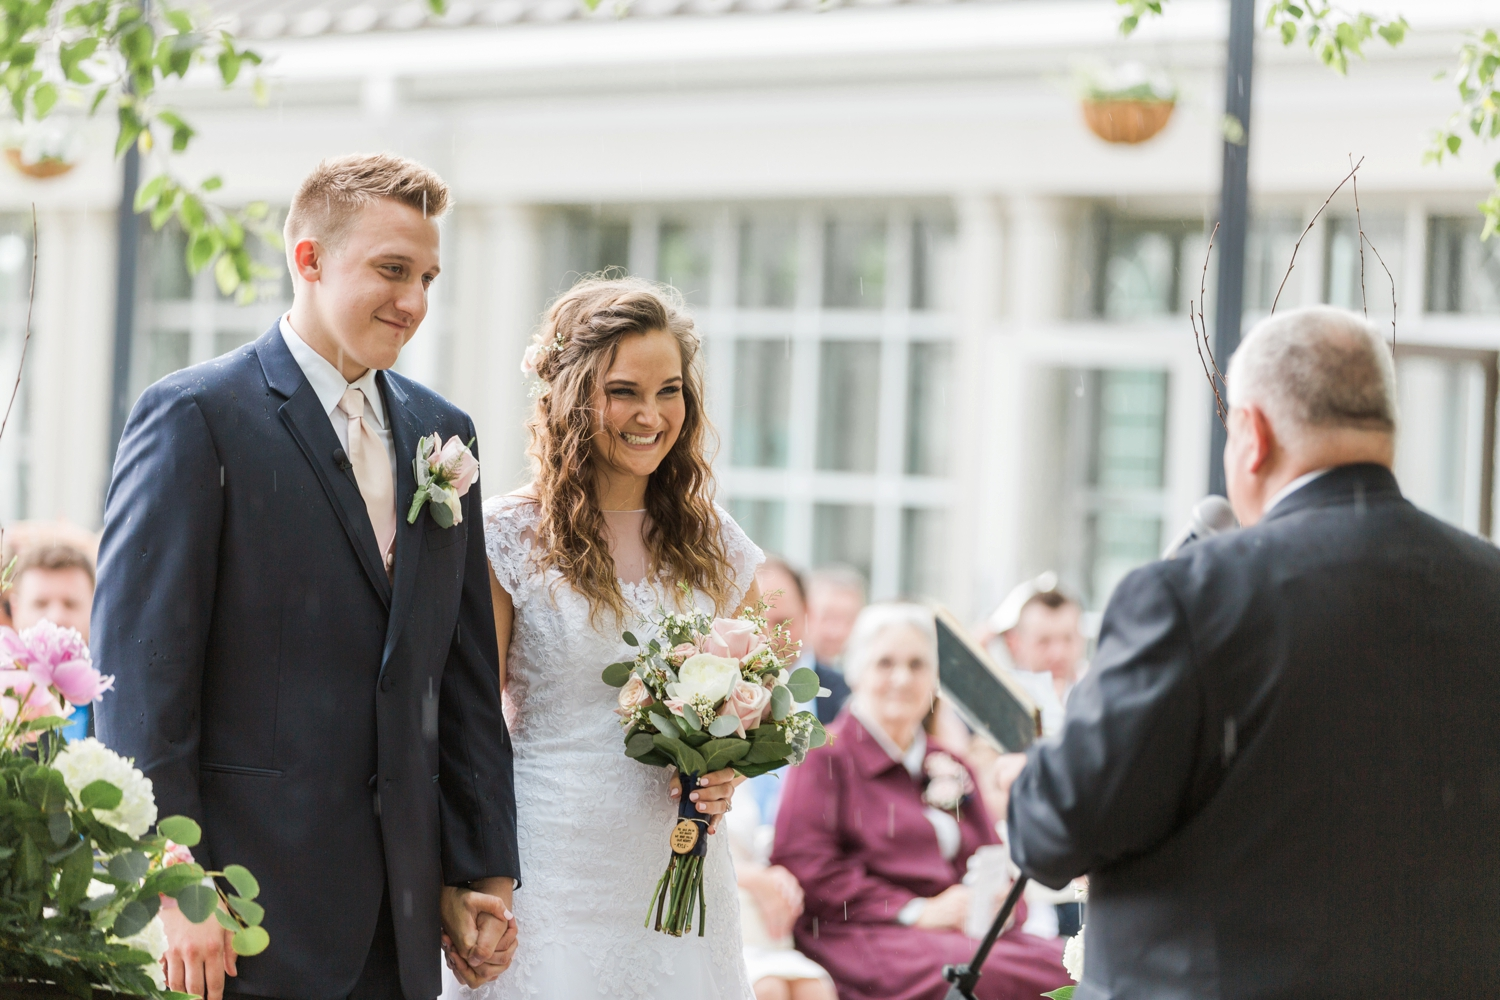 Community_Life_Center_Indianapolis_Indiana_Wedding_Photographer_Chloe_Luka_Photography_6956.jpg